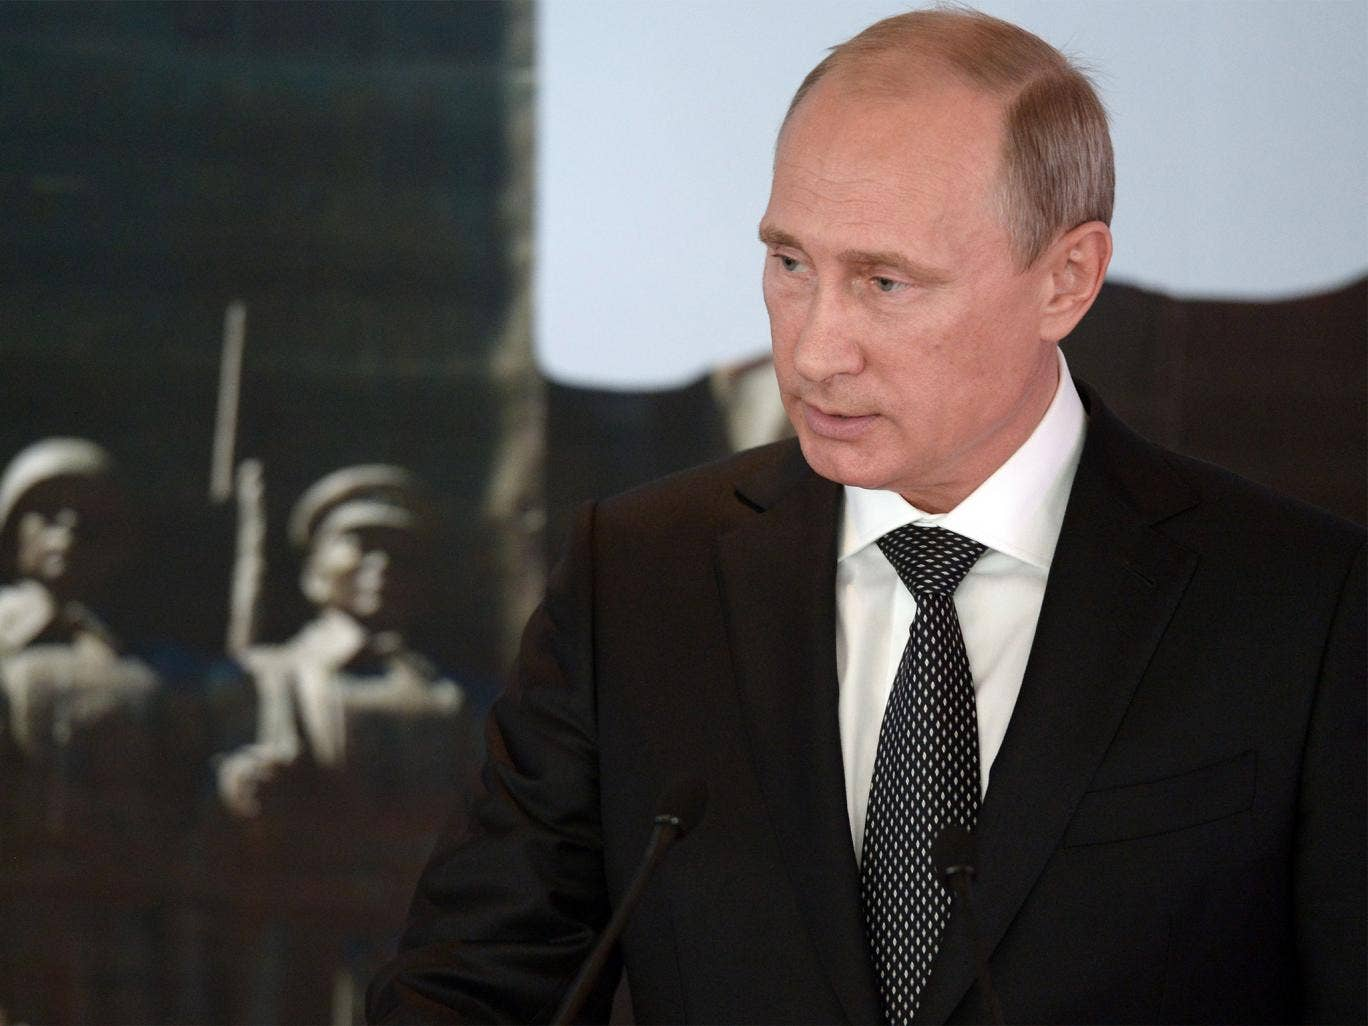 Putin faces domestic pressure to both scale down and ramp up the conflict